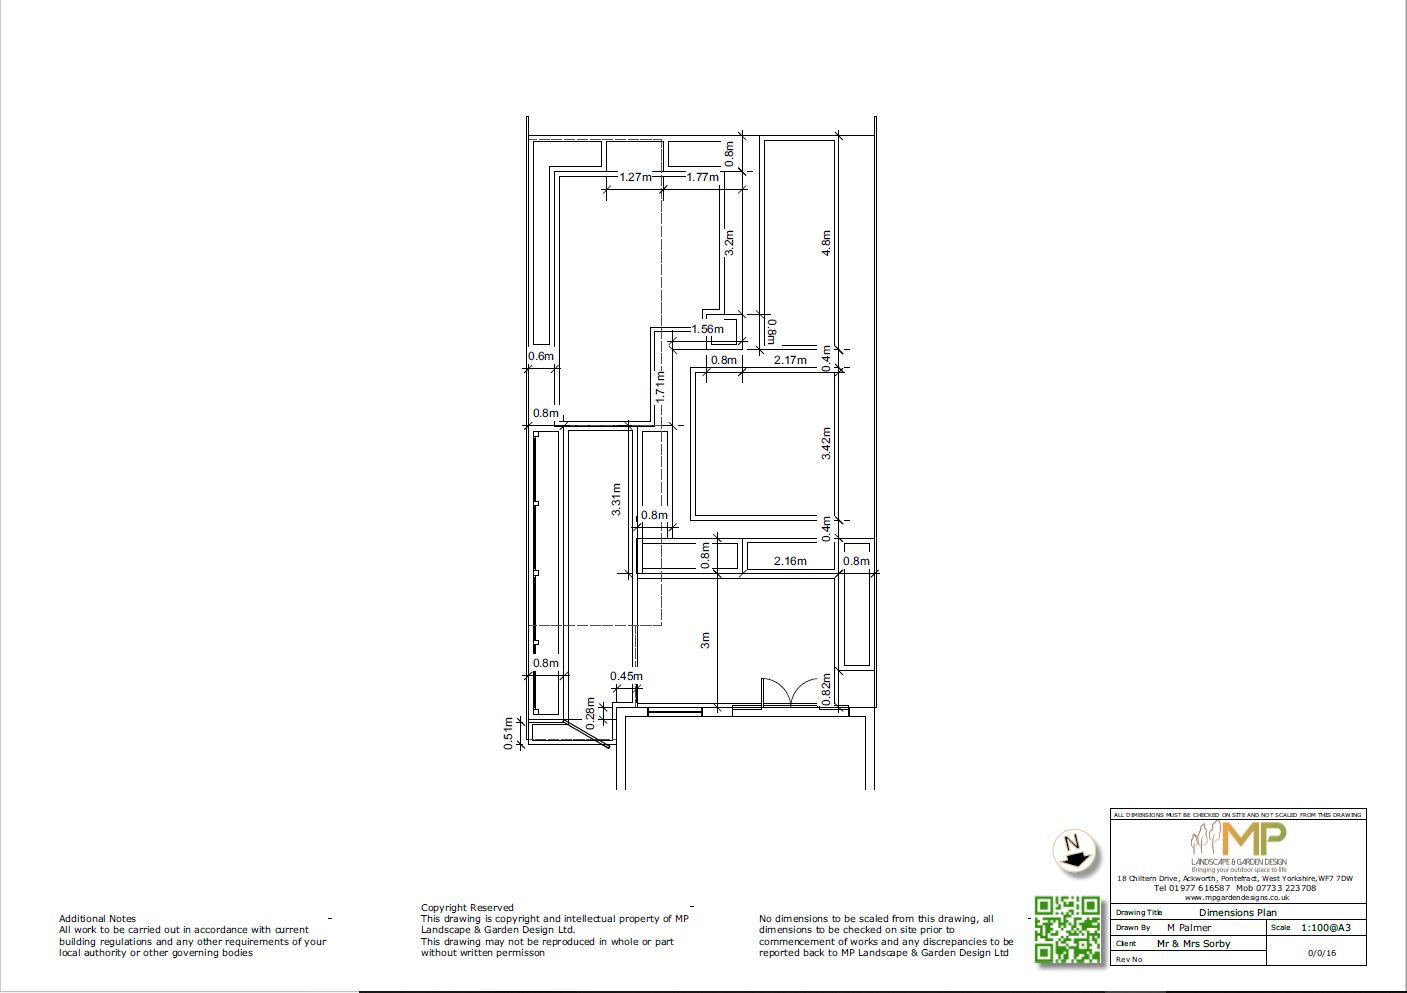 Garden layout dimensions plans for a rear garden in Pontefract, West Yorkshire.